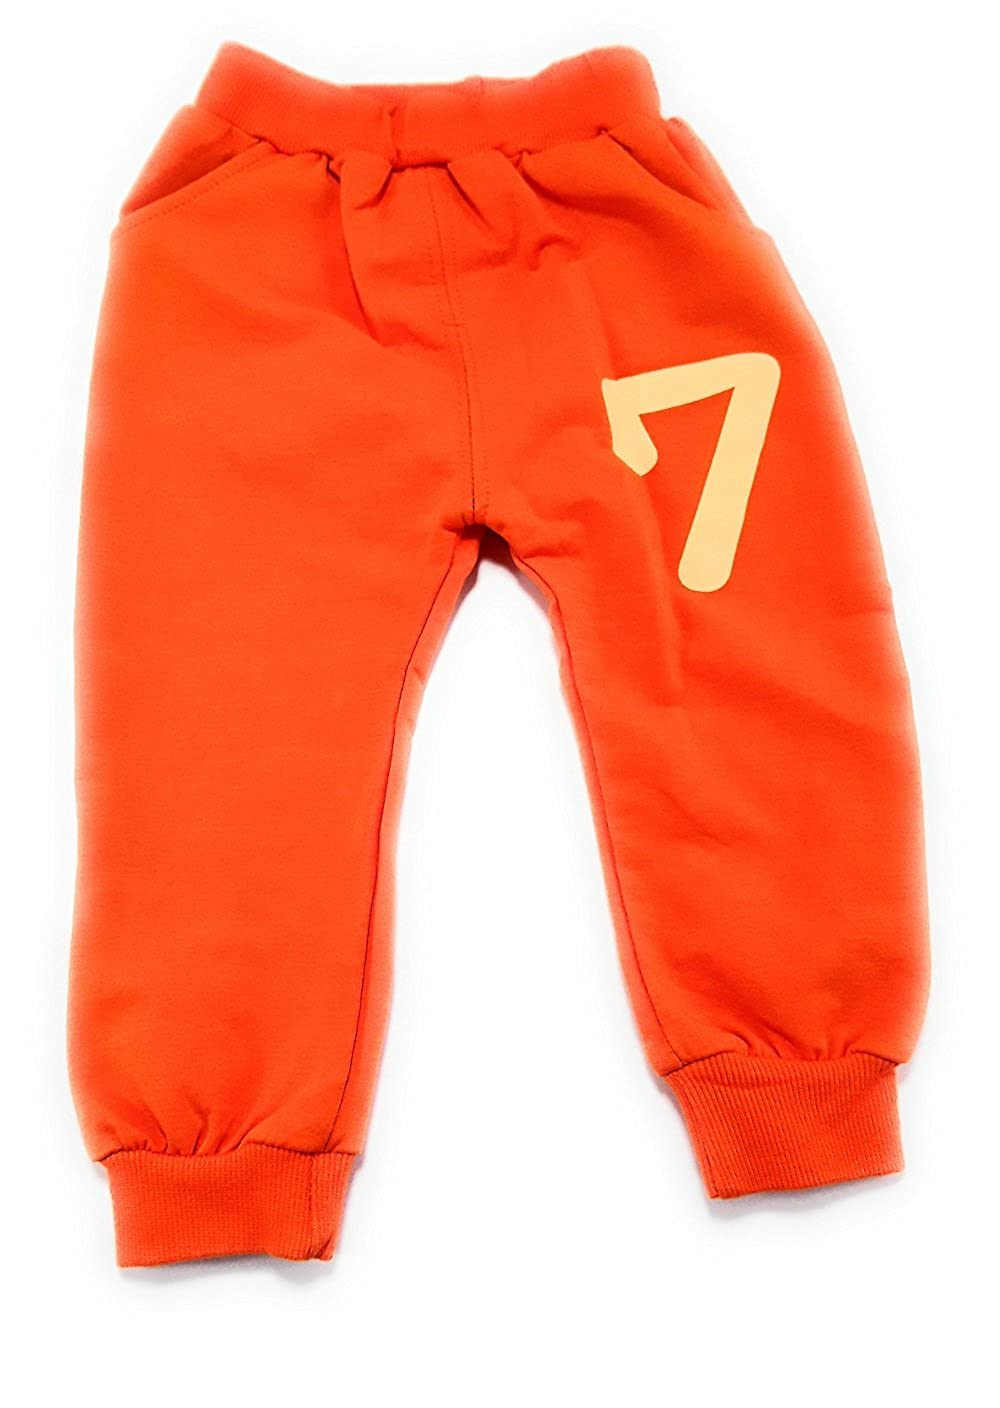 Just Looking 7 Baby//Toddler Sweatsuit//Joggers Set